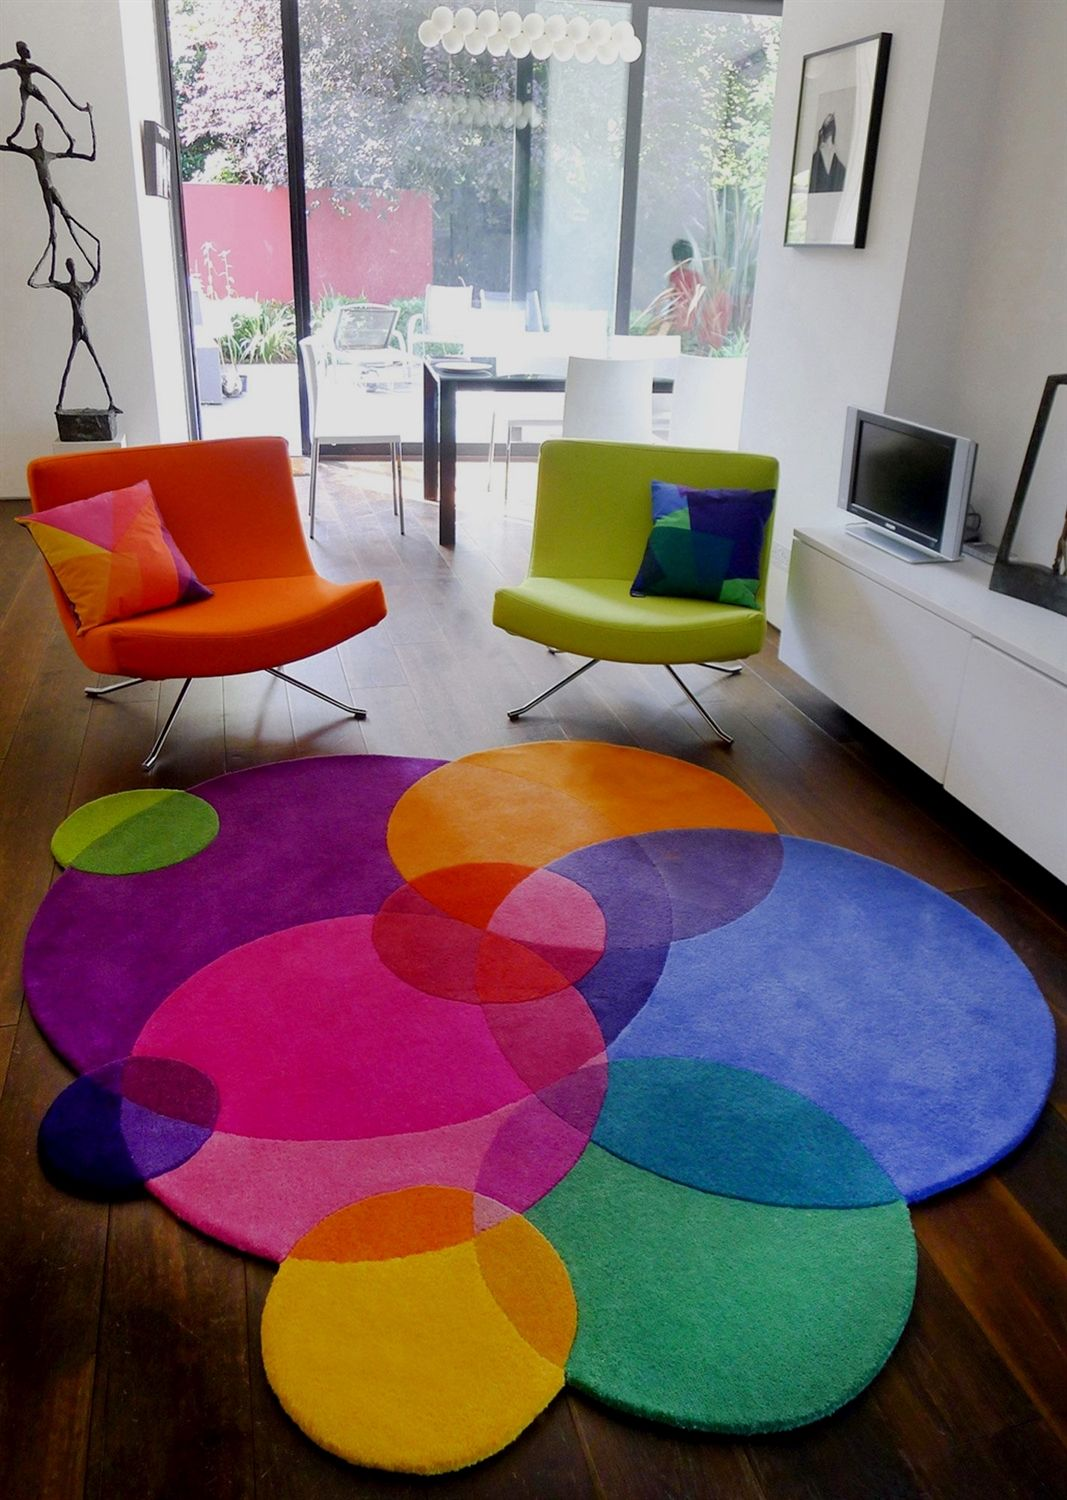 Sonya Winner Multicoloured Area Rug Bubbles One Of A Series Unusual Shaped Rugs